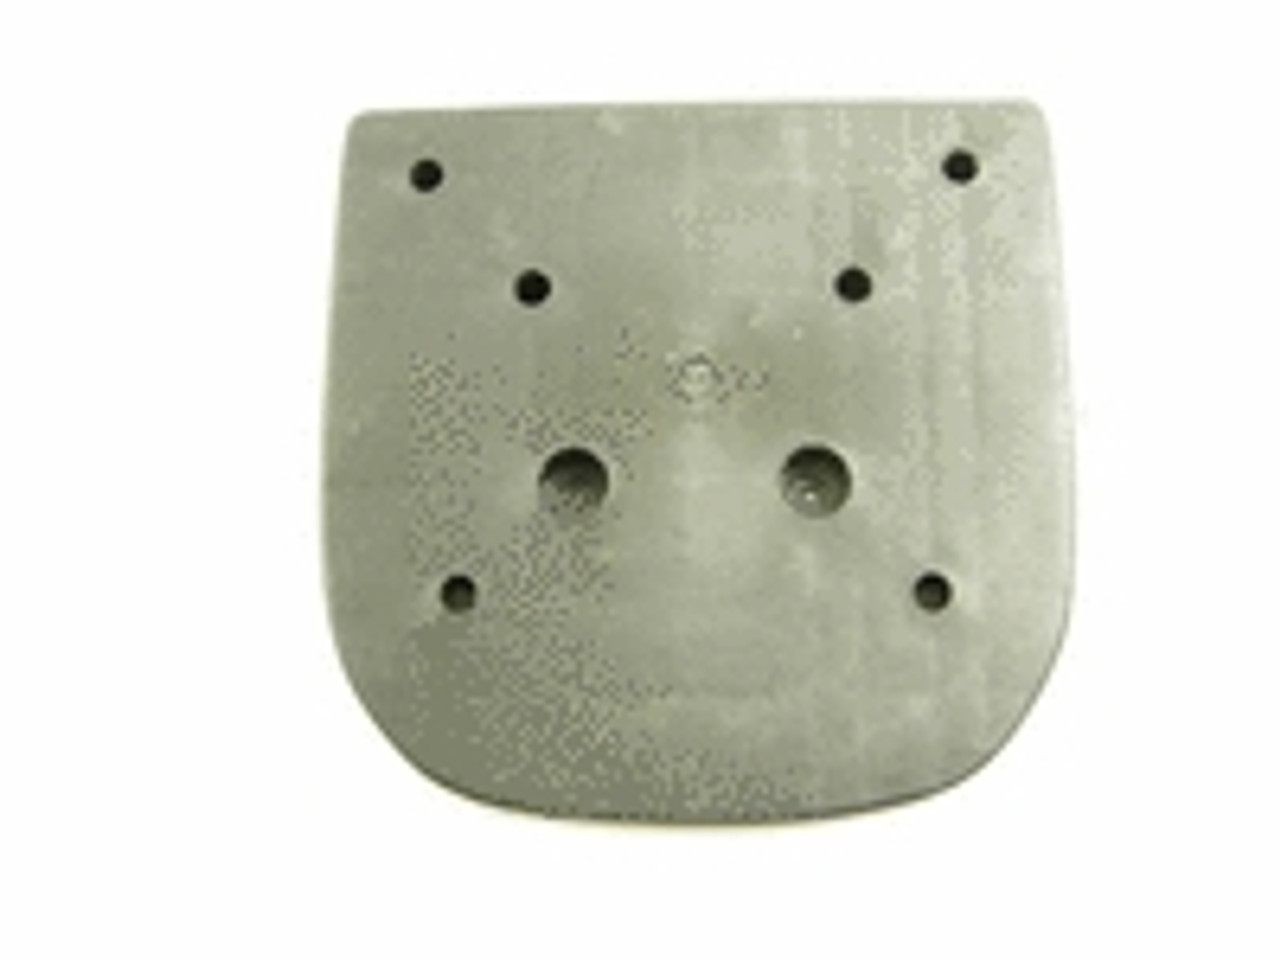 FLAT PLATE FOR TRUNK 12678-A149-14